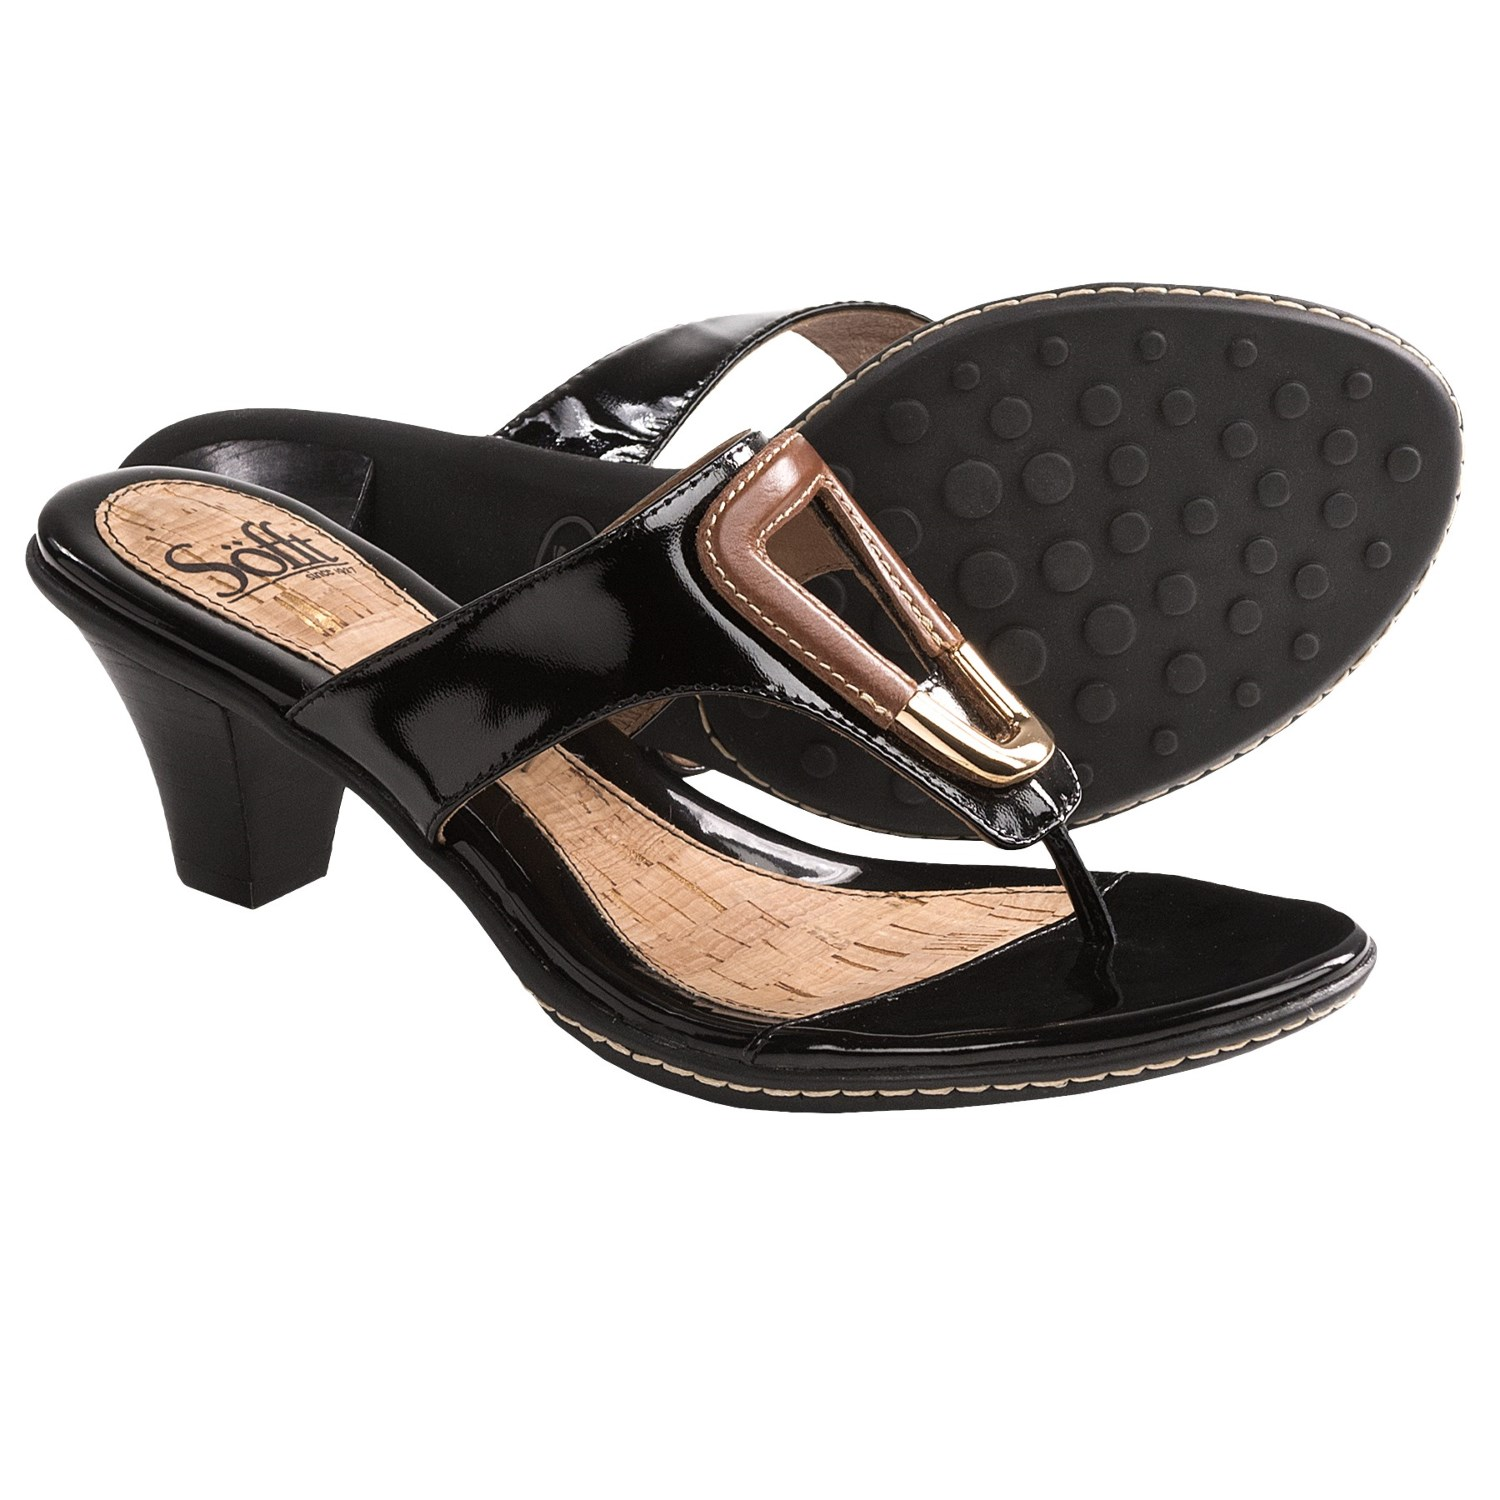 Sofft Raphaella Sandals - Patent Leather (For Women) in Black Patent